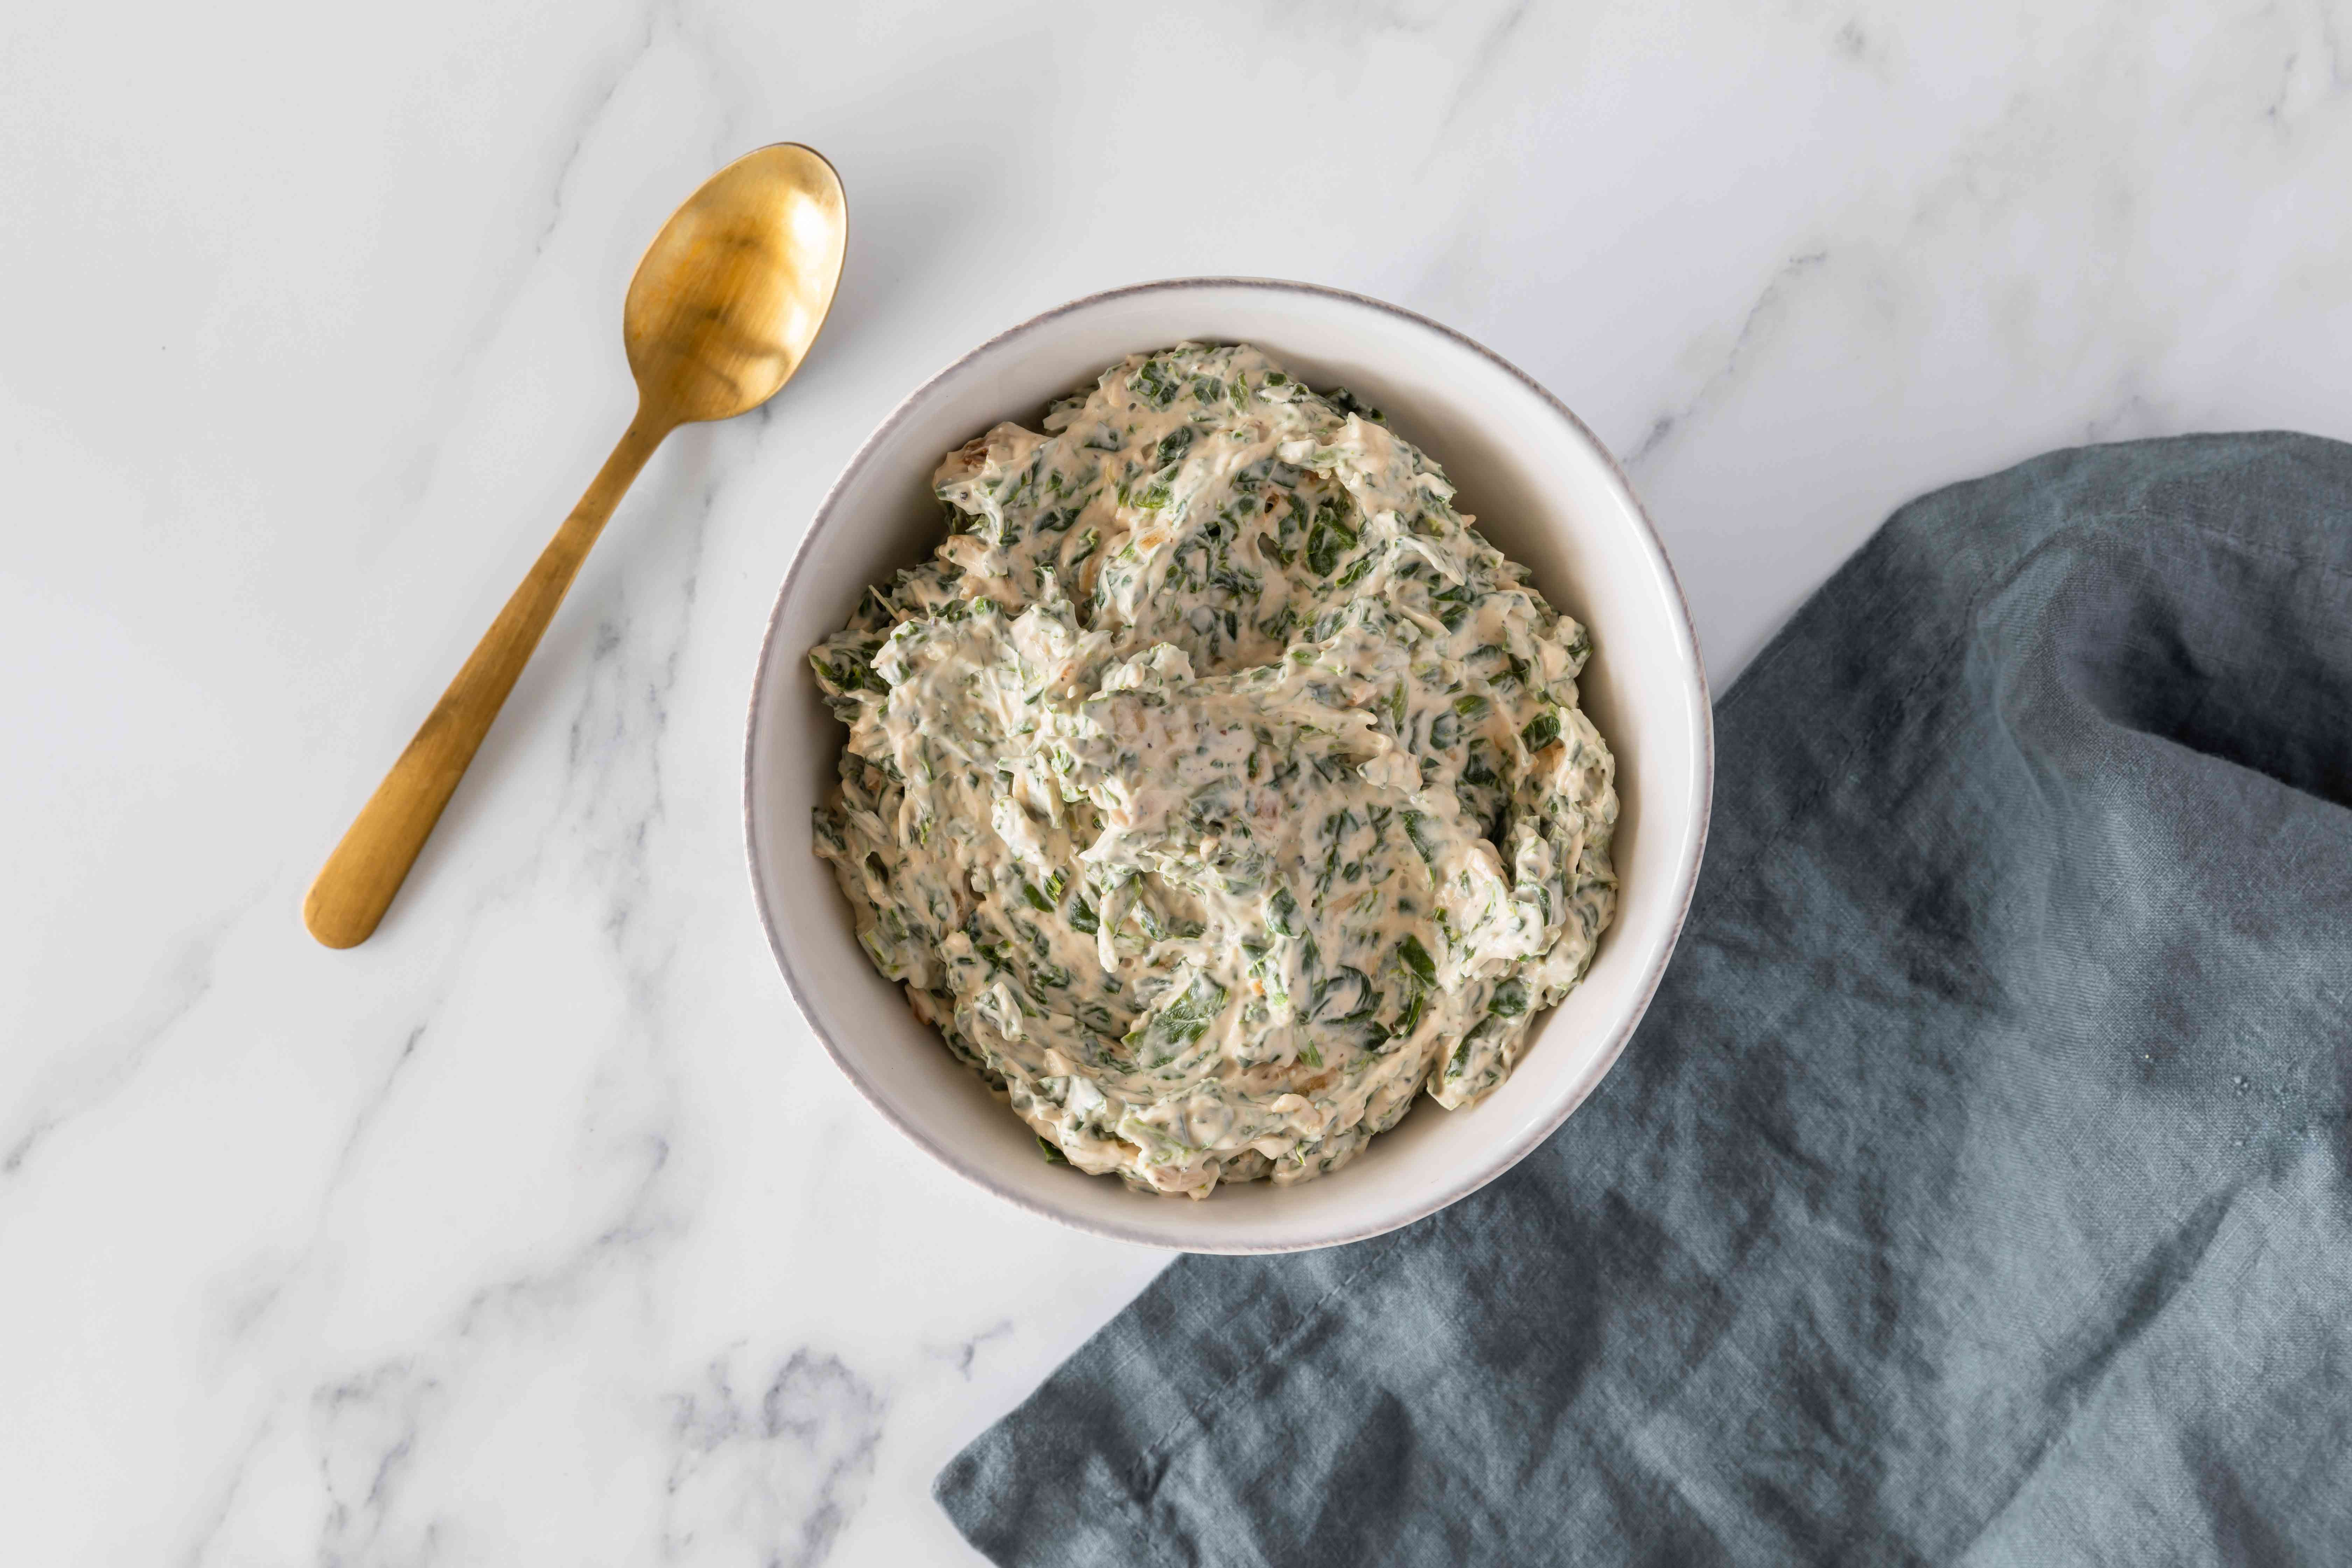 Spinach dip in bowl with gold spoon